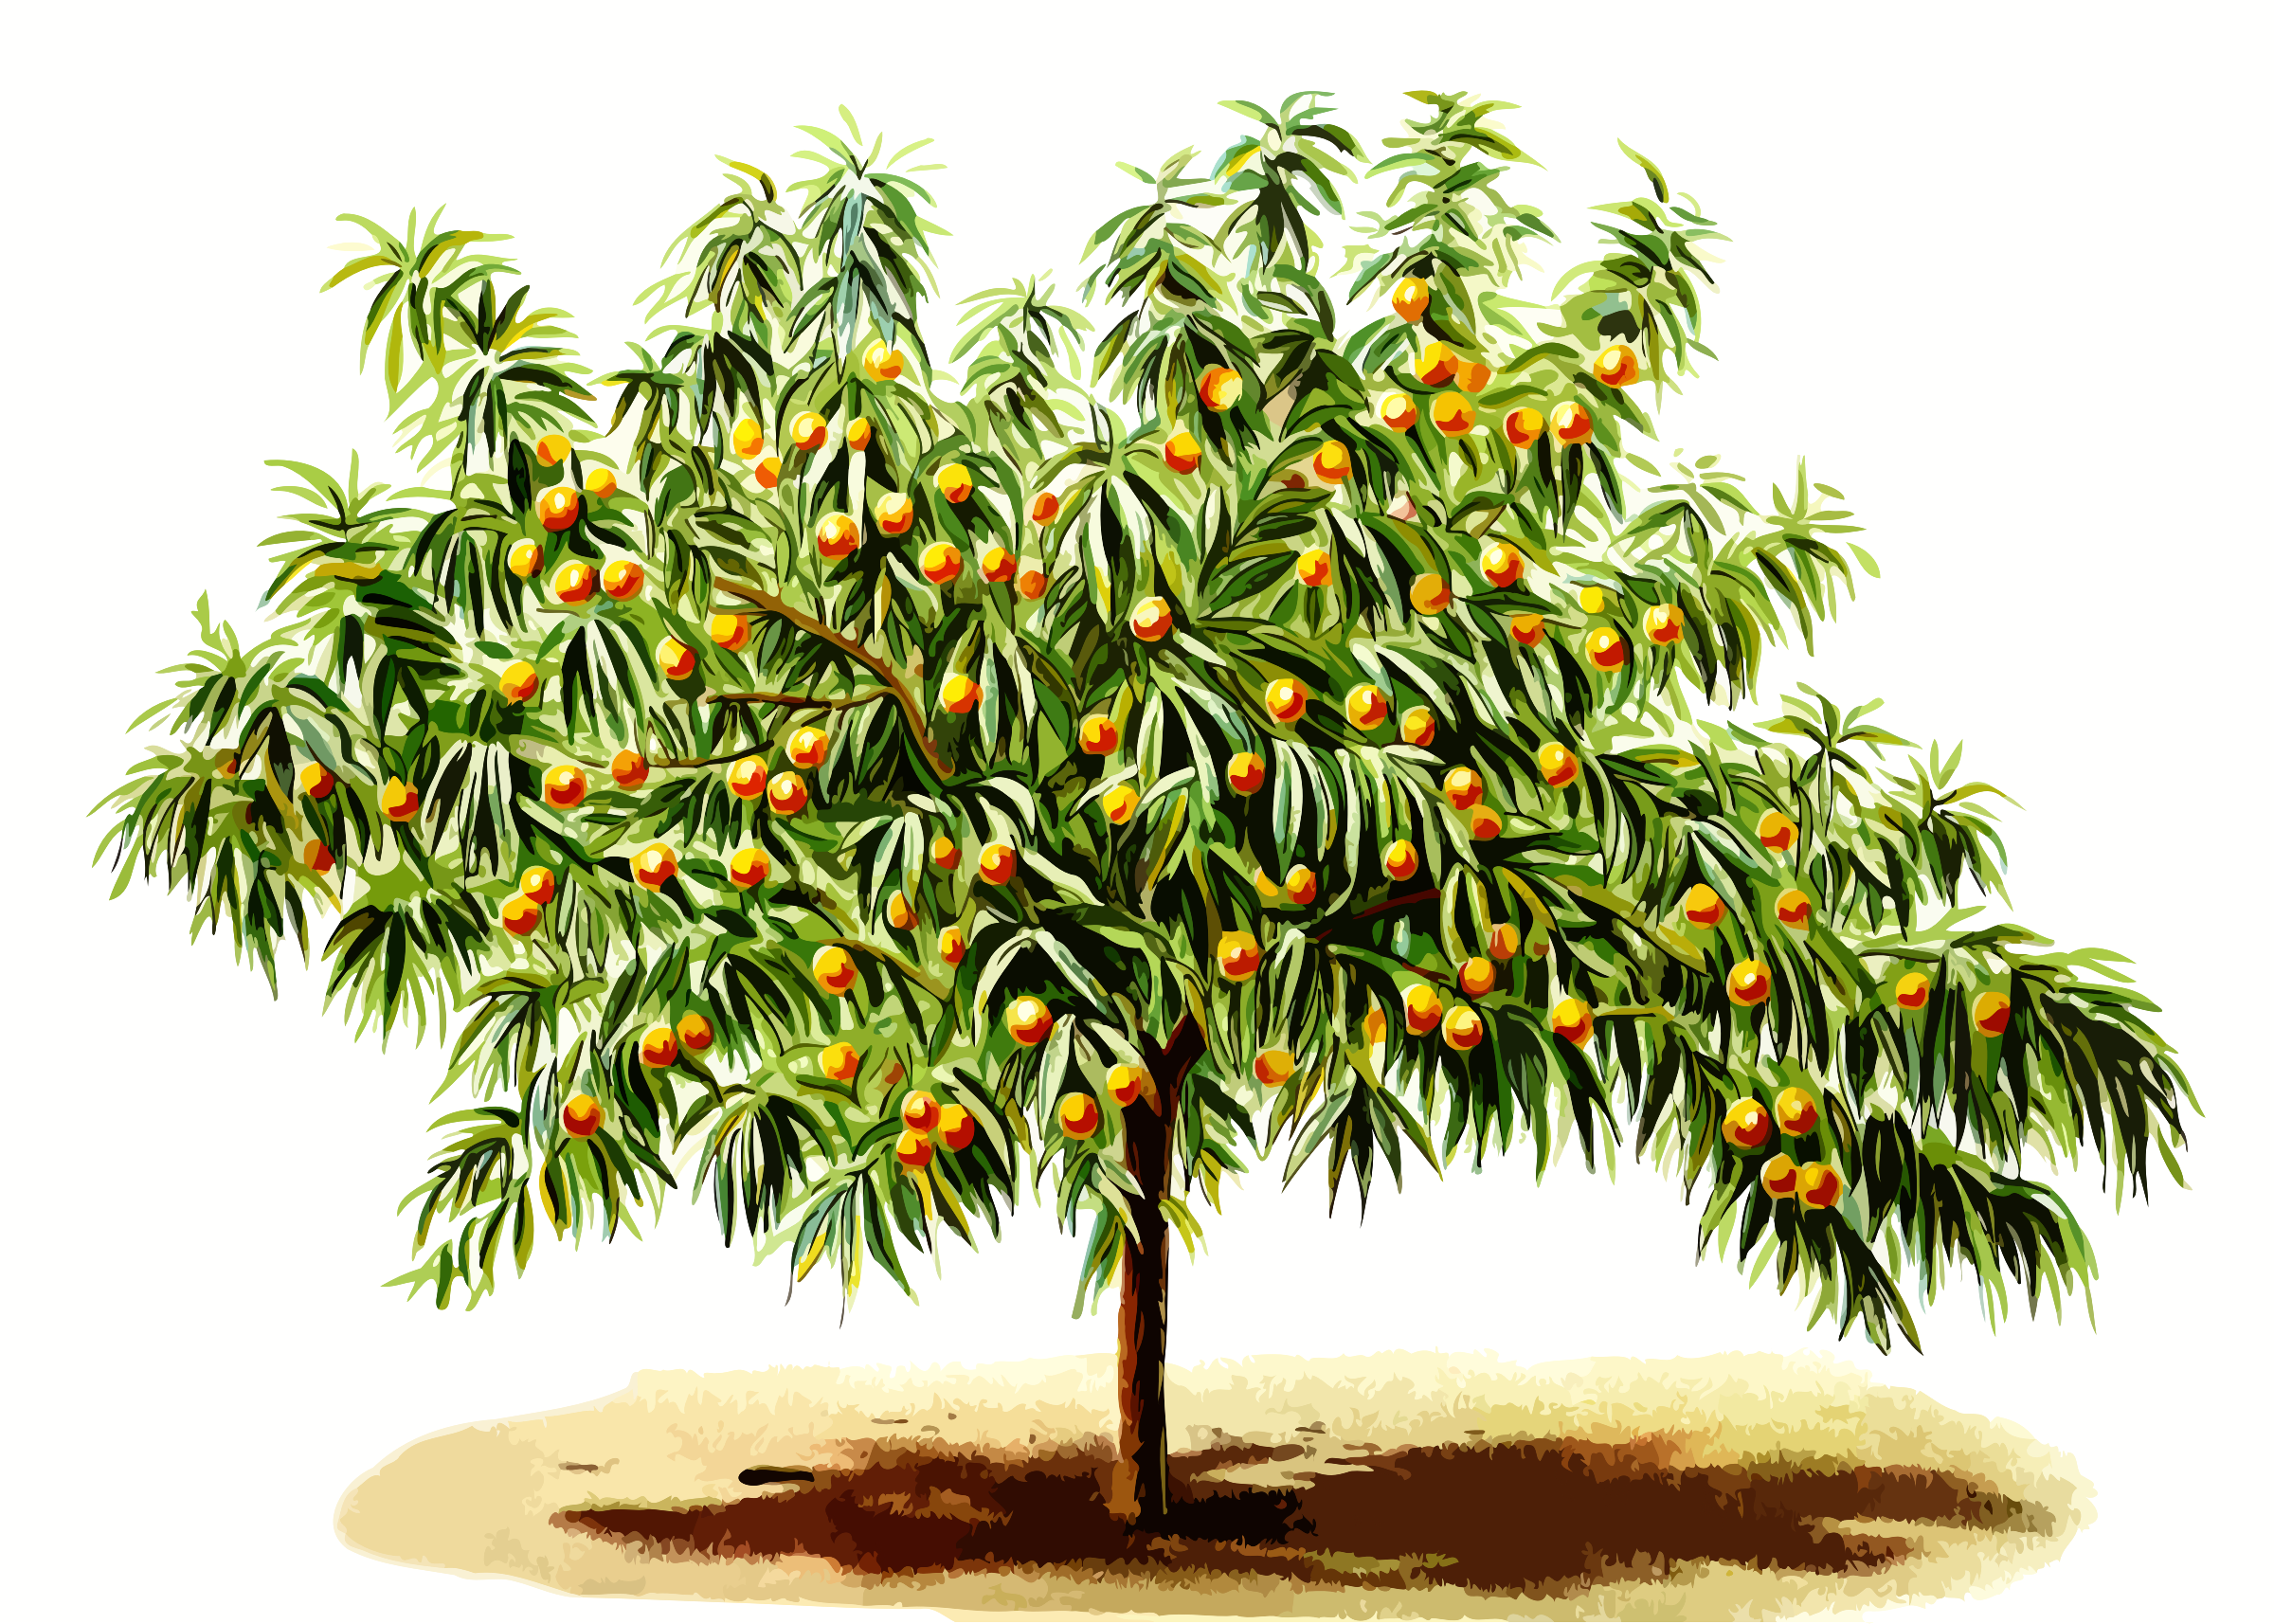 Peach tree by Firkin